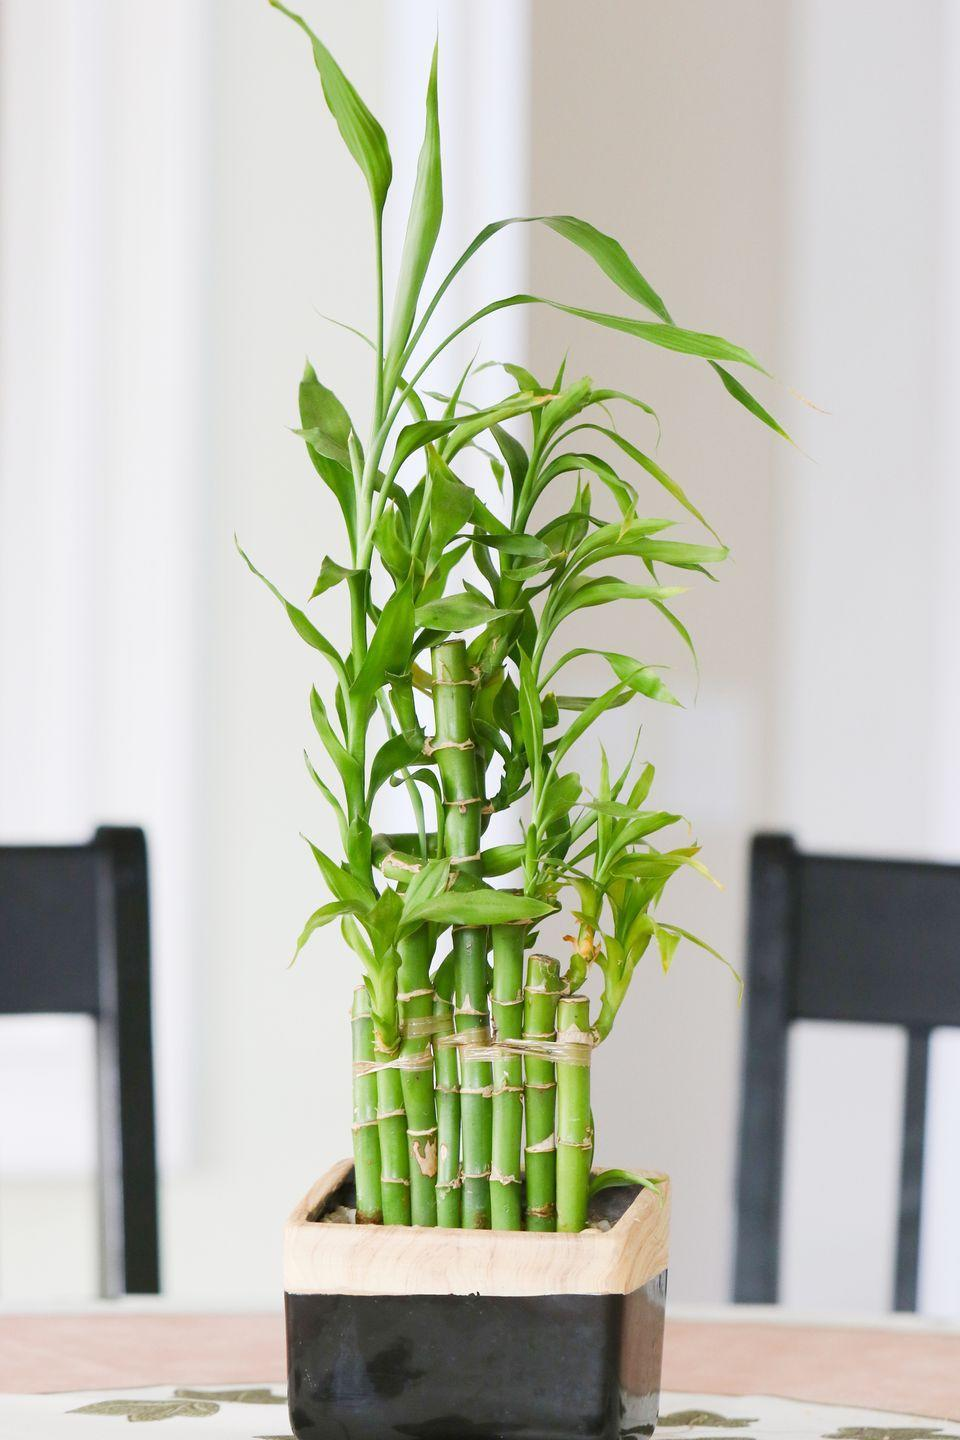 <p>Bamboo is great in a low light room and is easy to care for. It will help create that spa feeling at home. Bamboo grows and spreads quickly so having some in a pot makes it more manageable. </p>